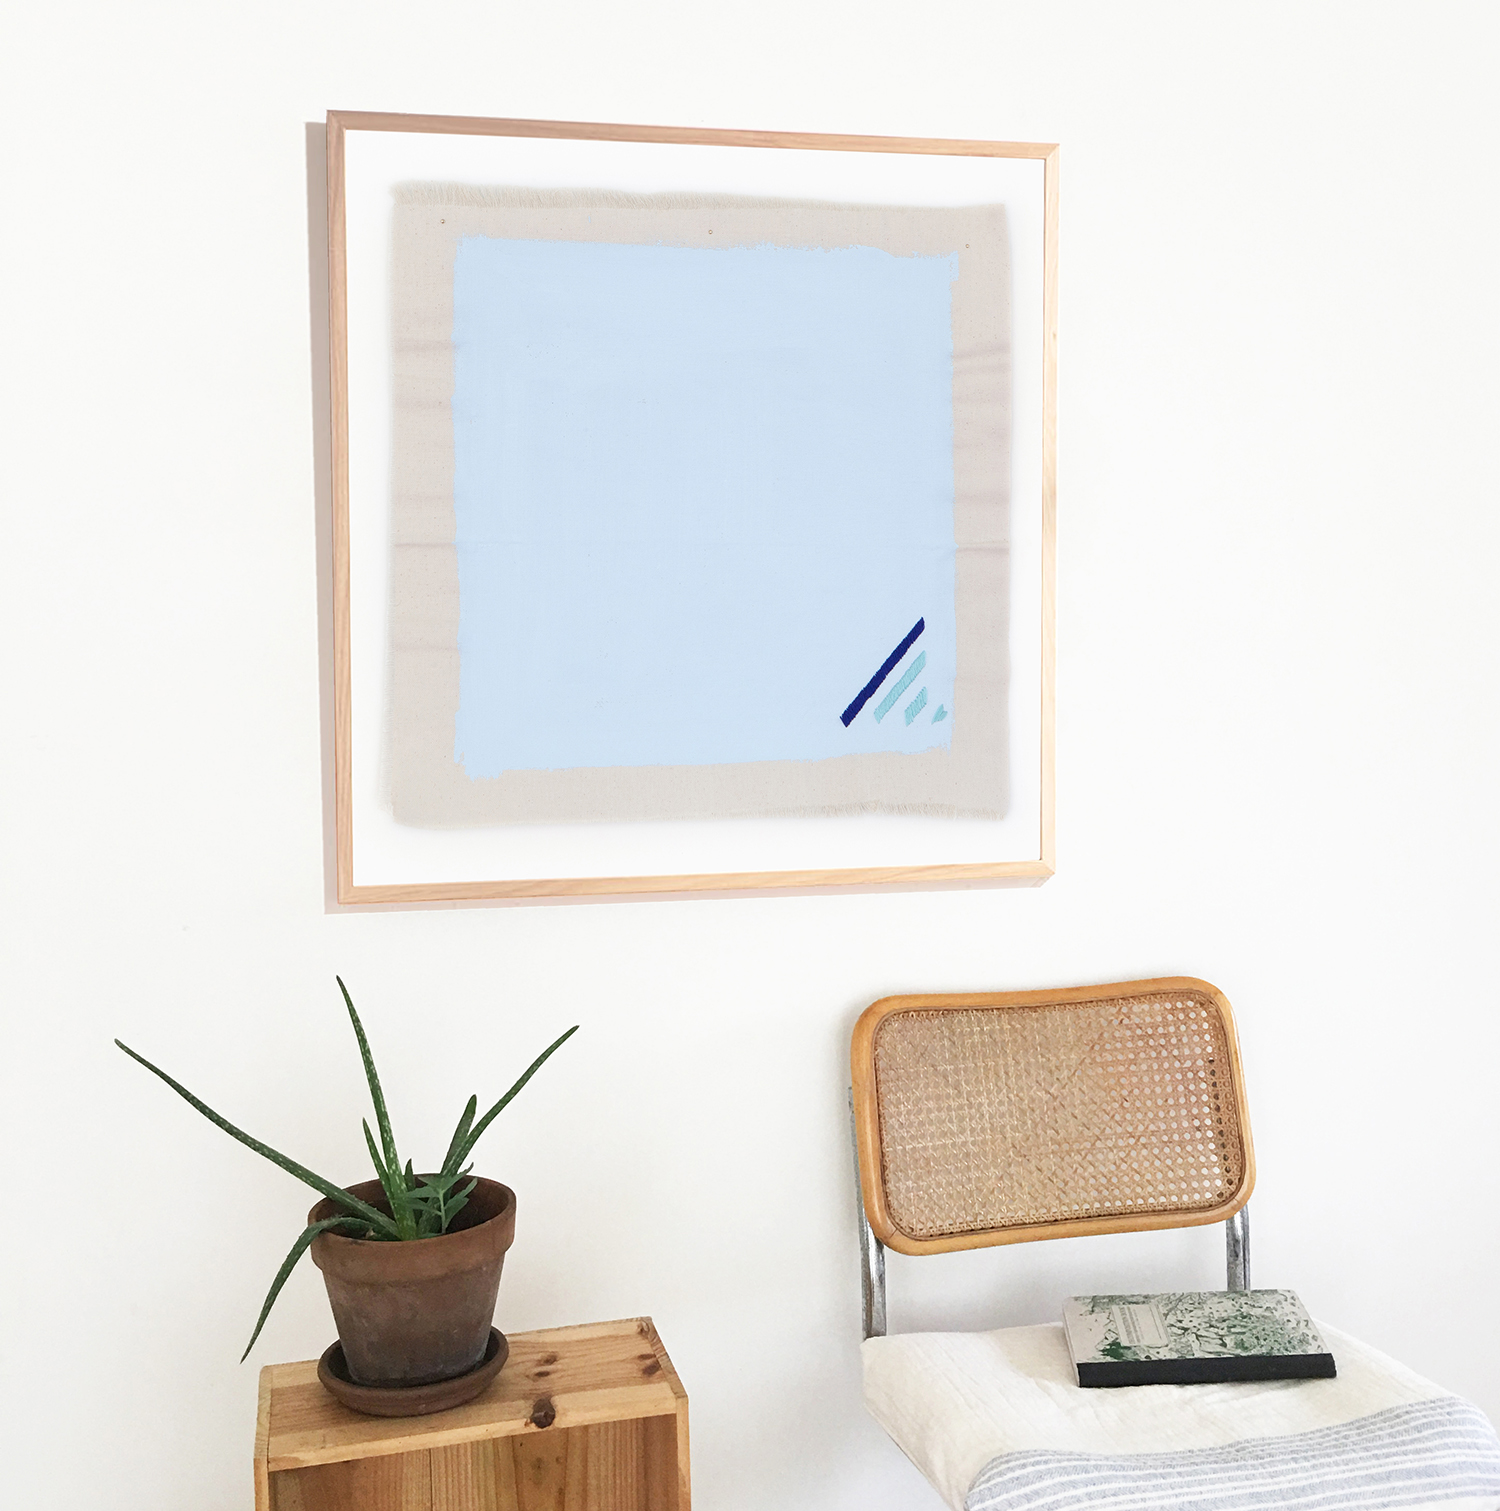 Robins egg blue art print in minimalist space